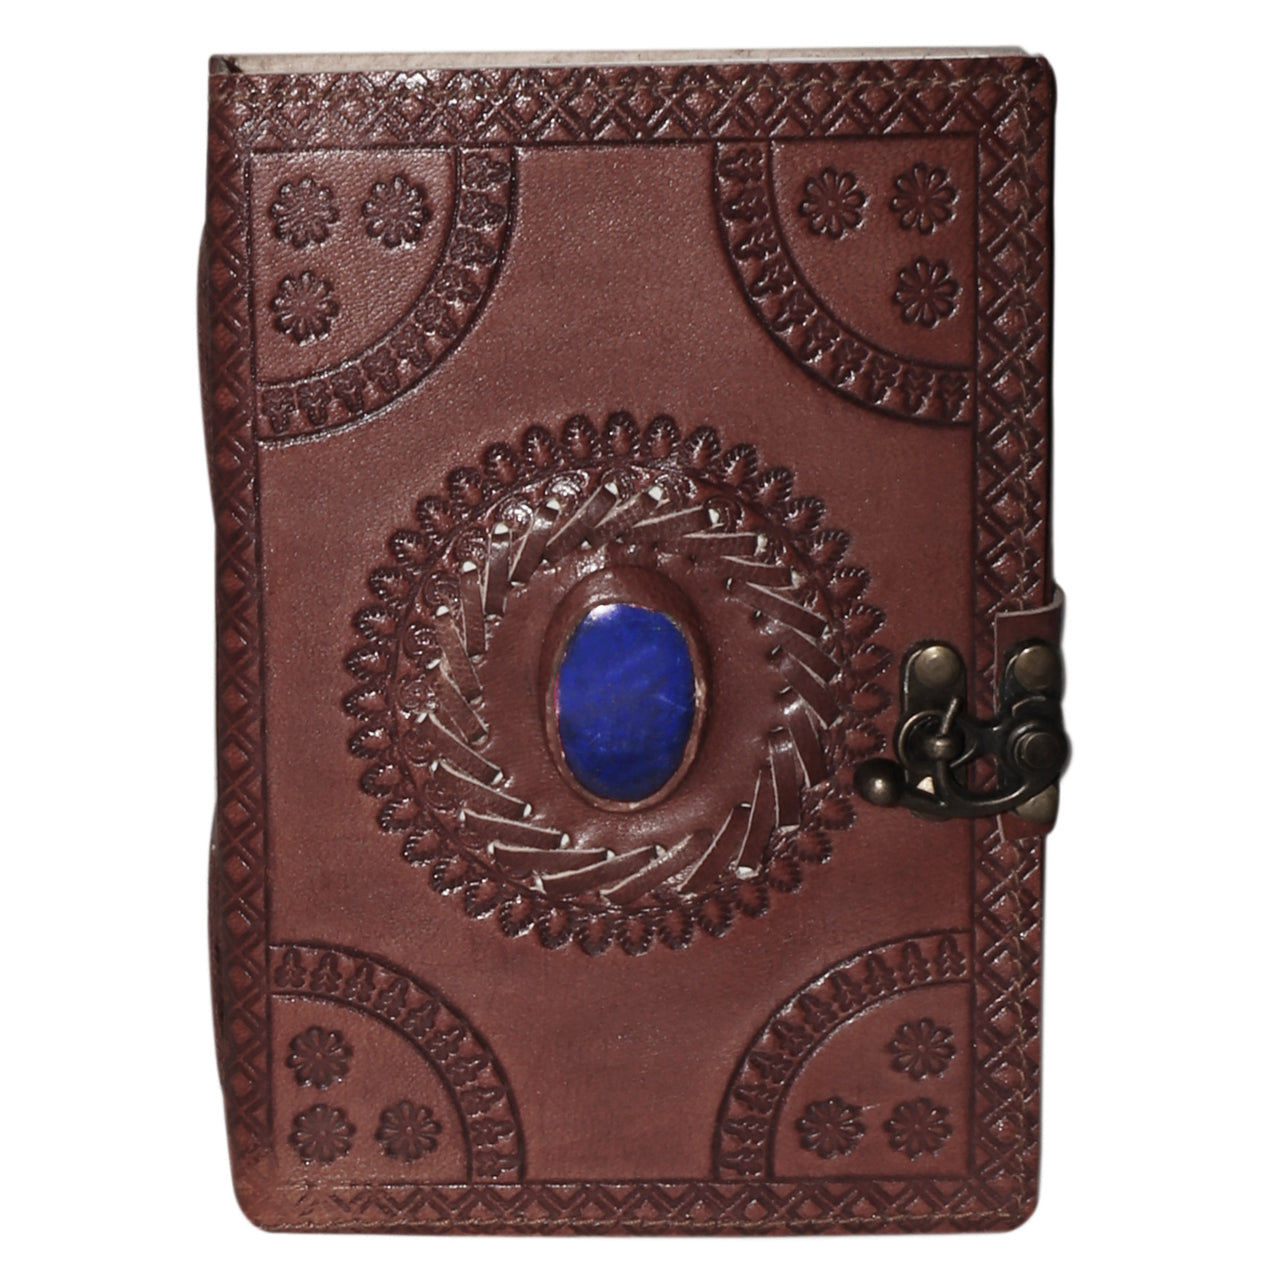 Leather Journal w/ Beautiful Stone